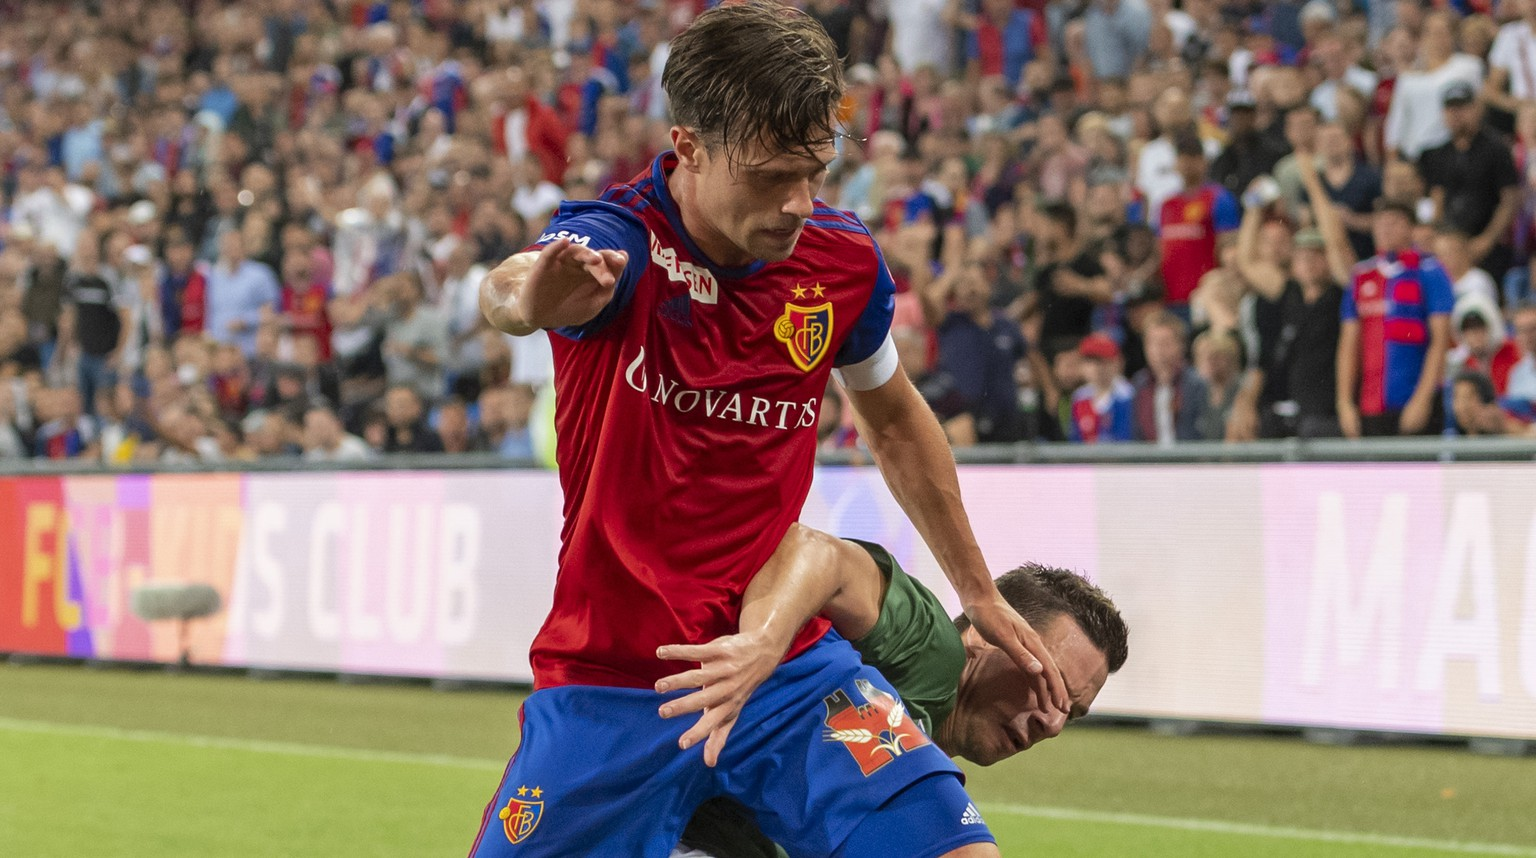 Basel's Valentin Stocker, left, fights for the ball against PSV's Nick Viergever, right, during the UEFA Champions League second qualifying round second leg match between Switzerland's FC Basel 1893 and Netherland's PSV Eindhoven in the St. Jakob-Park stadium in Basel, Switzerland, on Tuesday, July 30, 2019. (KEYSTONE/Georgios Kefalas)